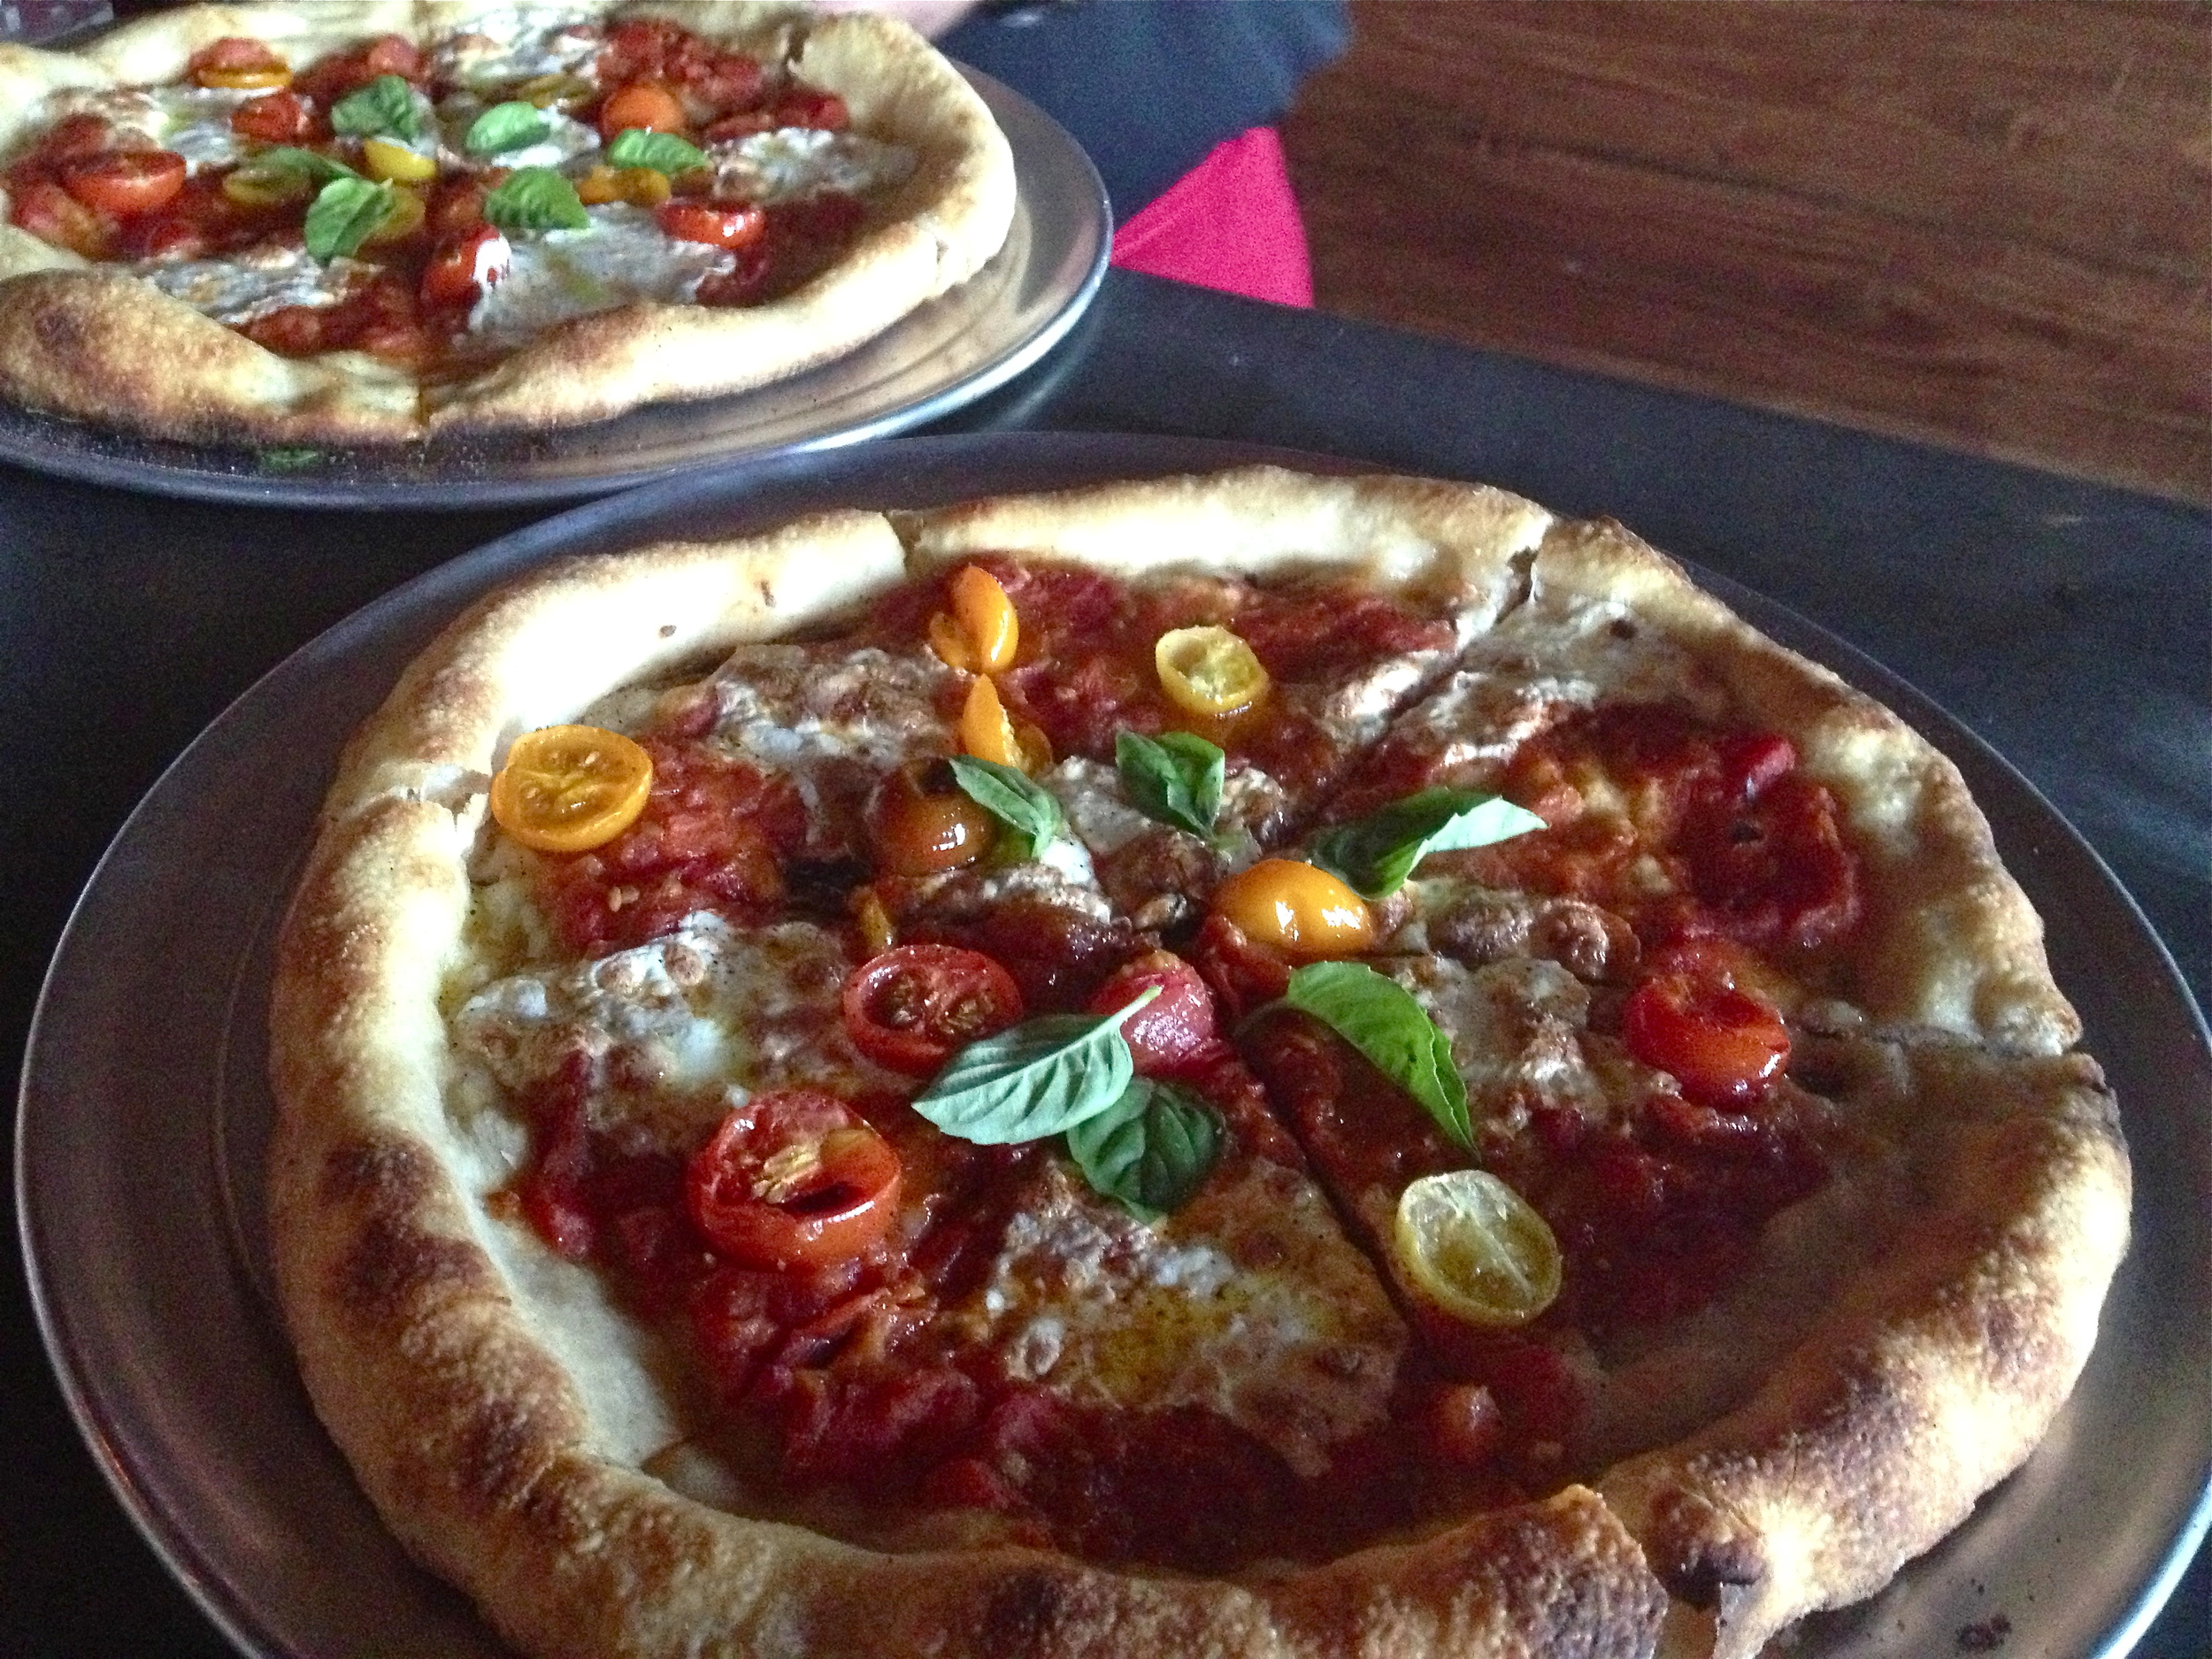 The Kinney has roma tomatoes, sweet cherry tomatoes, mozzarella and basil. (Photo by Nicole Reed)